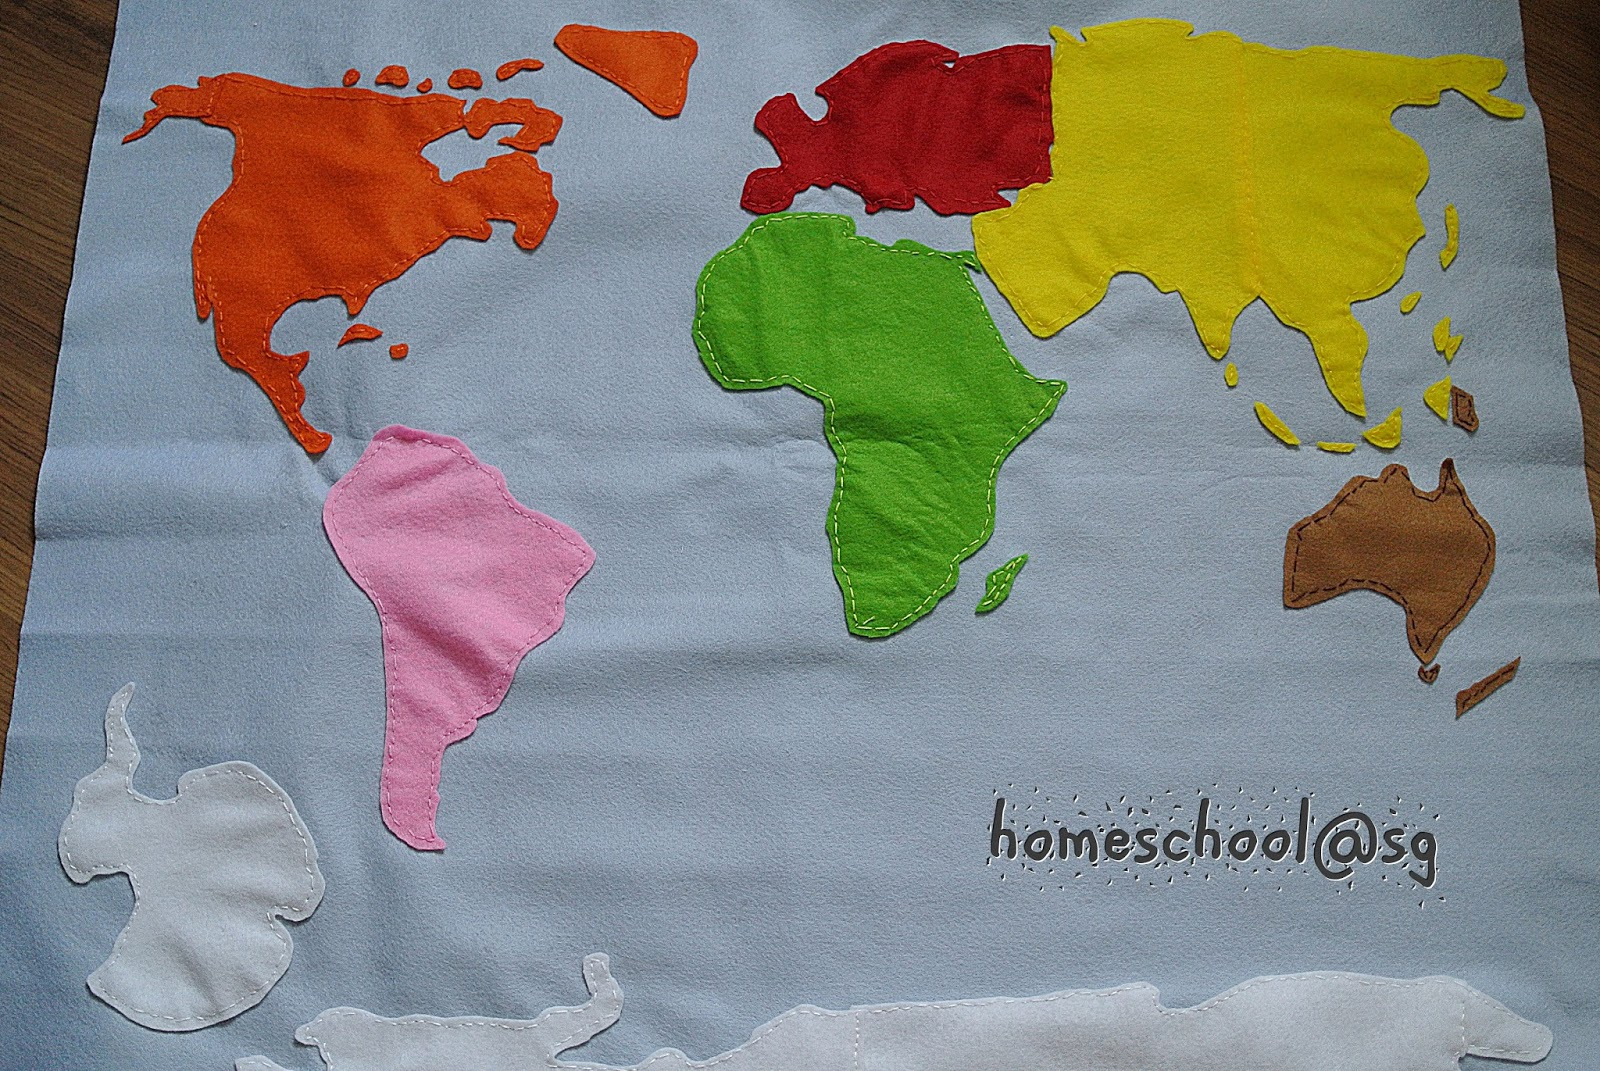 Homeschool Sg Diy Continent Map